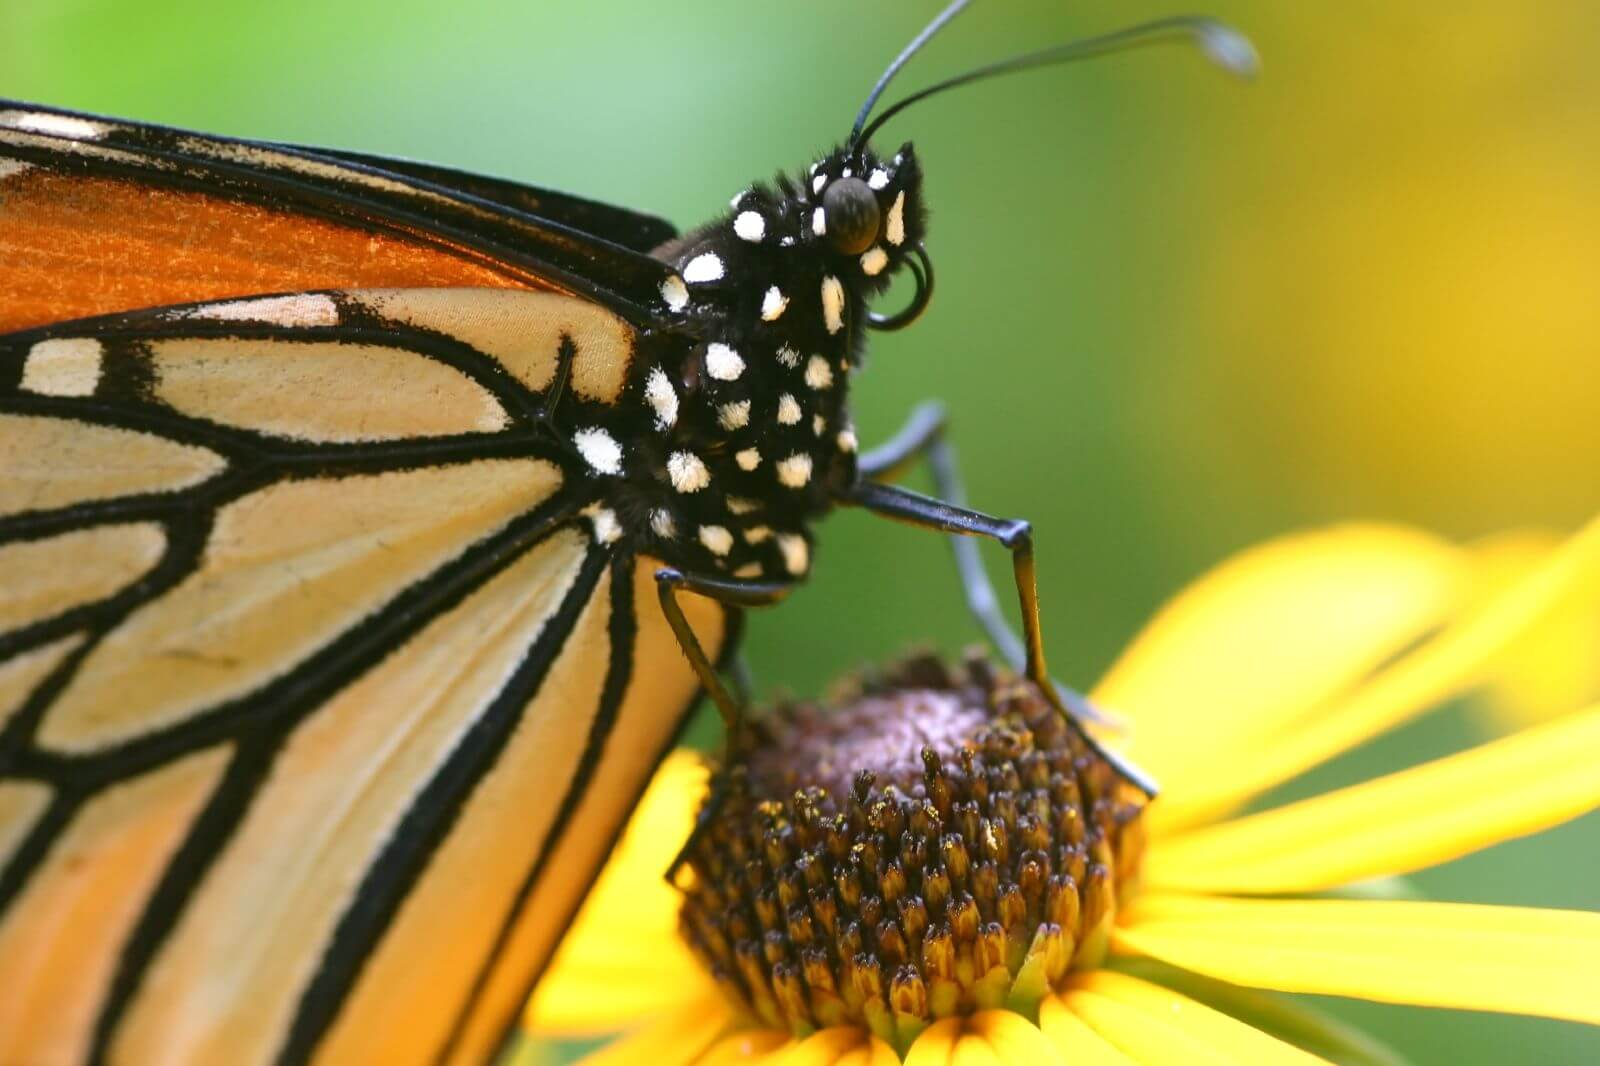 https://hi-news.ru/wp-content/uploads/2018/01/monarch-butterfly.jpg